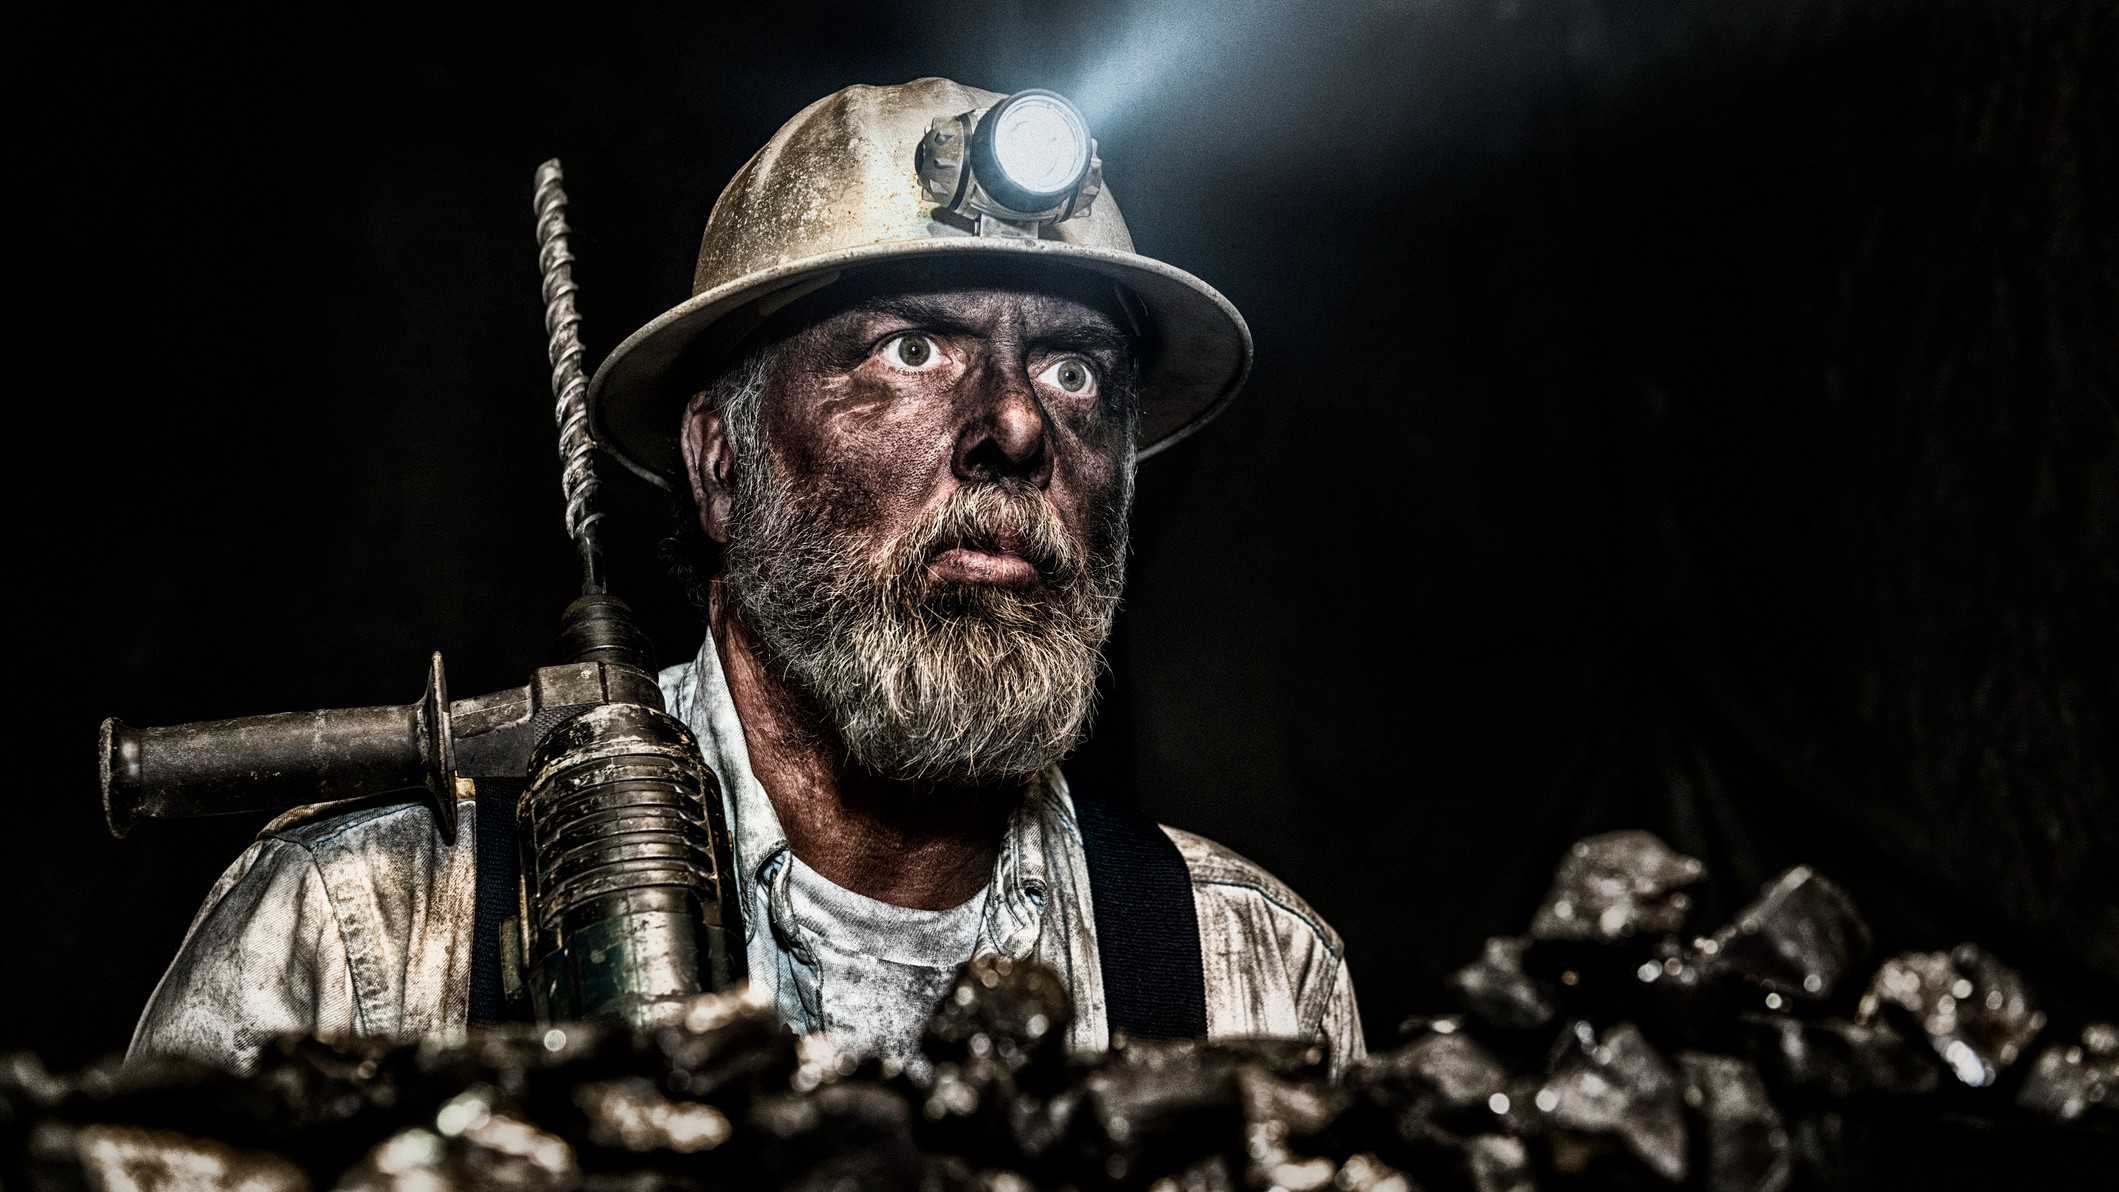 Coal miner with dirty face in a mine